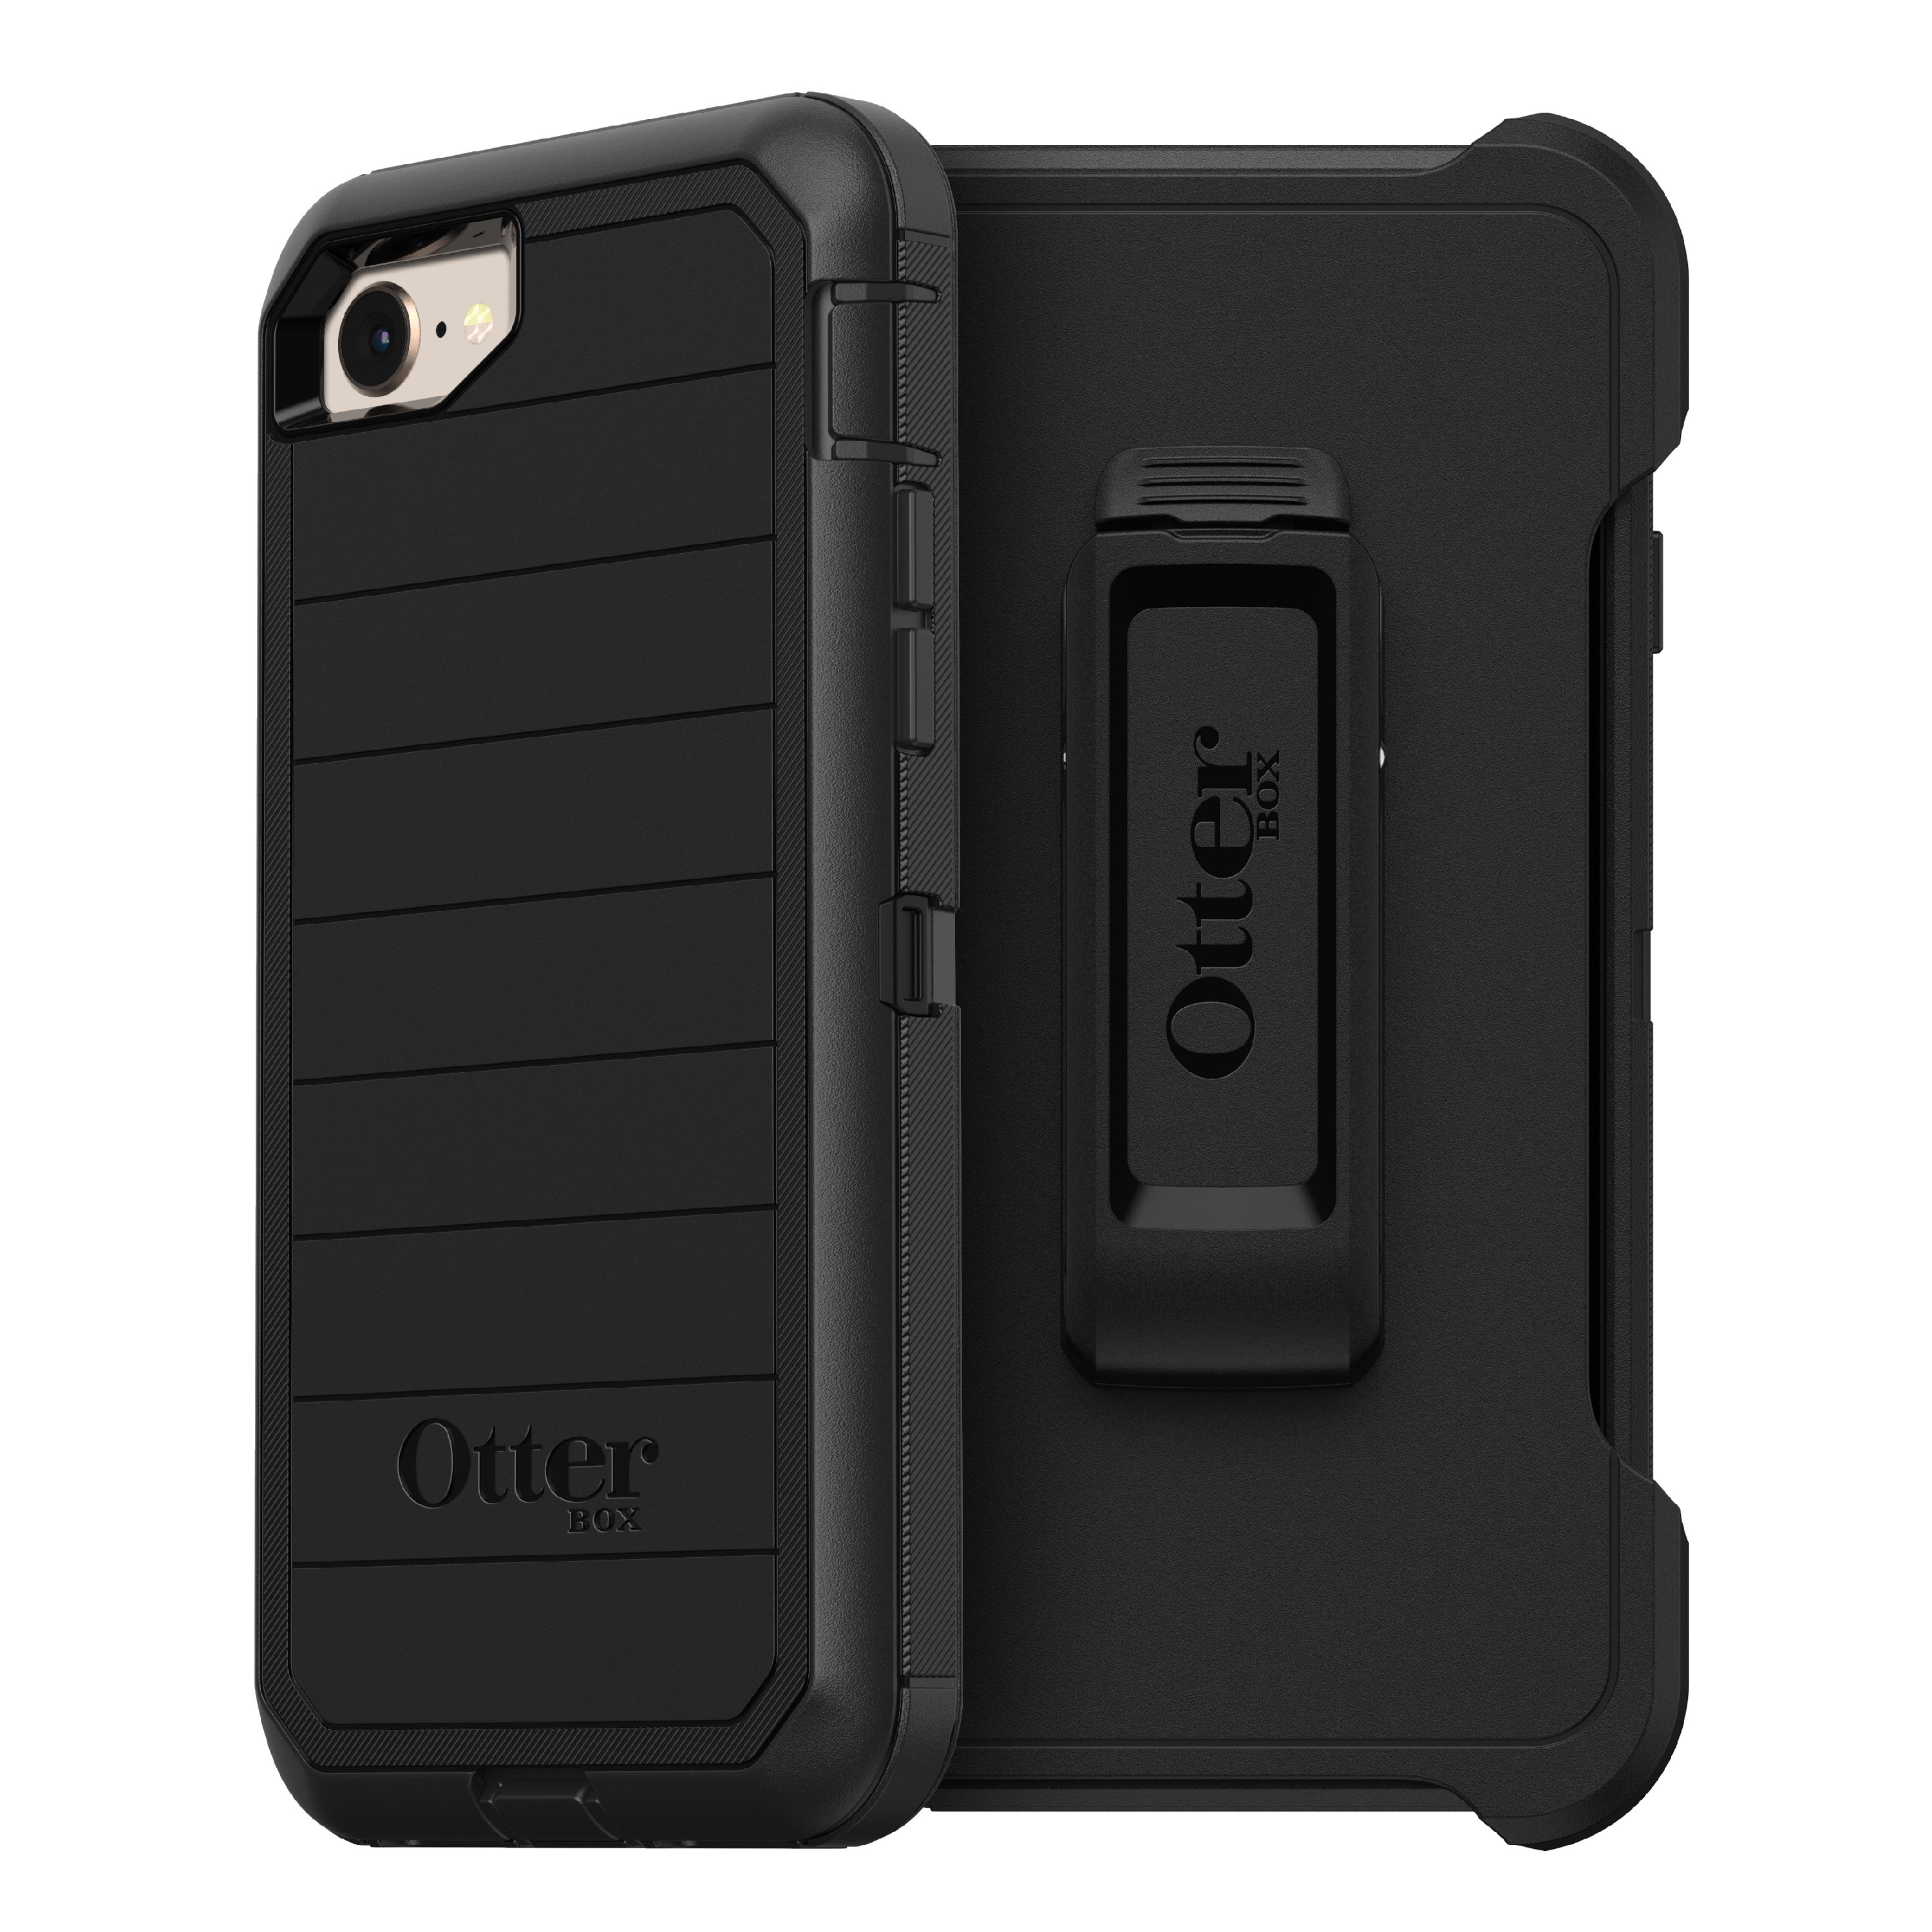 OtterBox Defender Series Pro Phone Case for Apple iPhone SE (2nd Gen), iPhone 8, iPhone 7 - Black